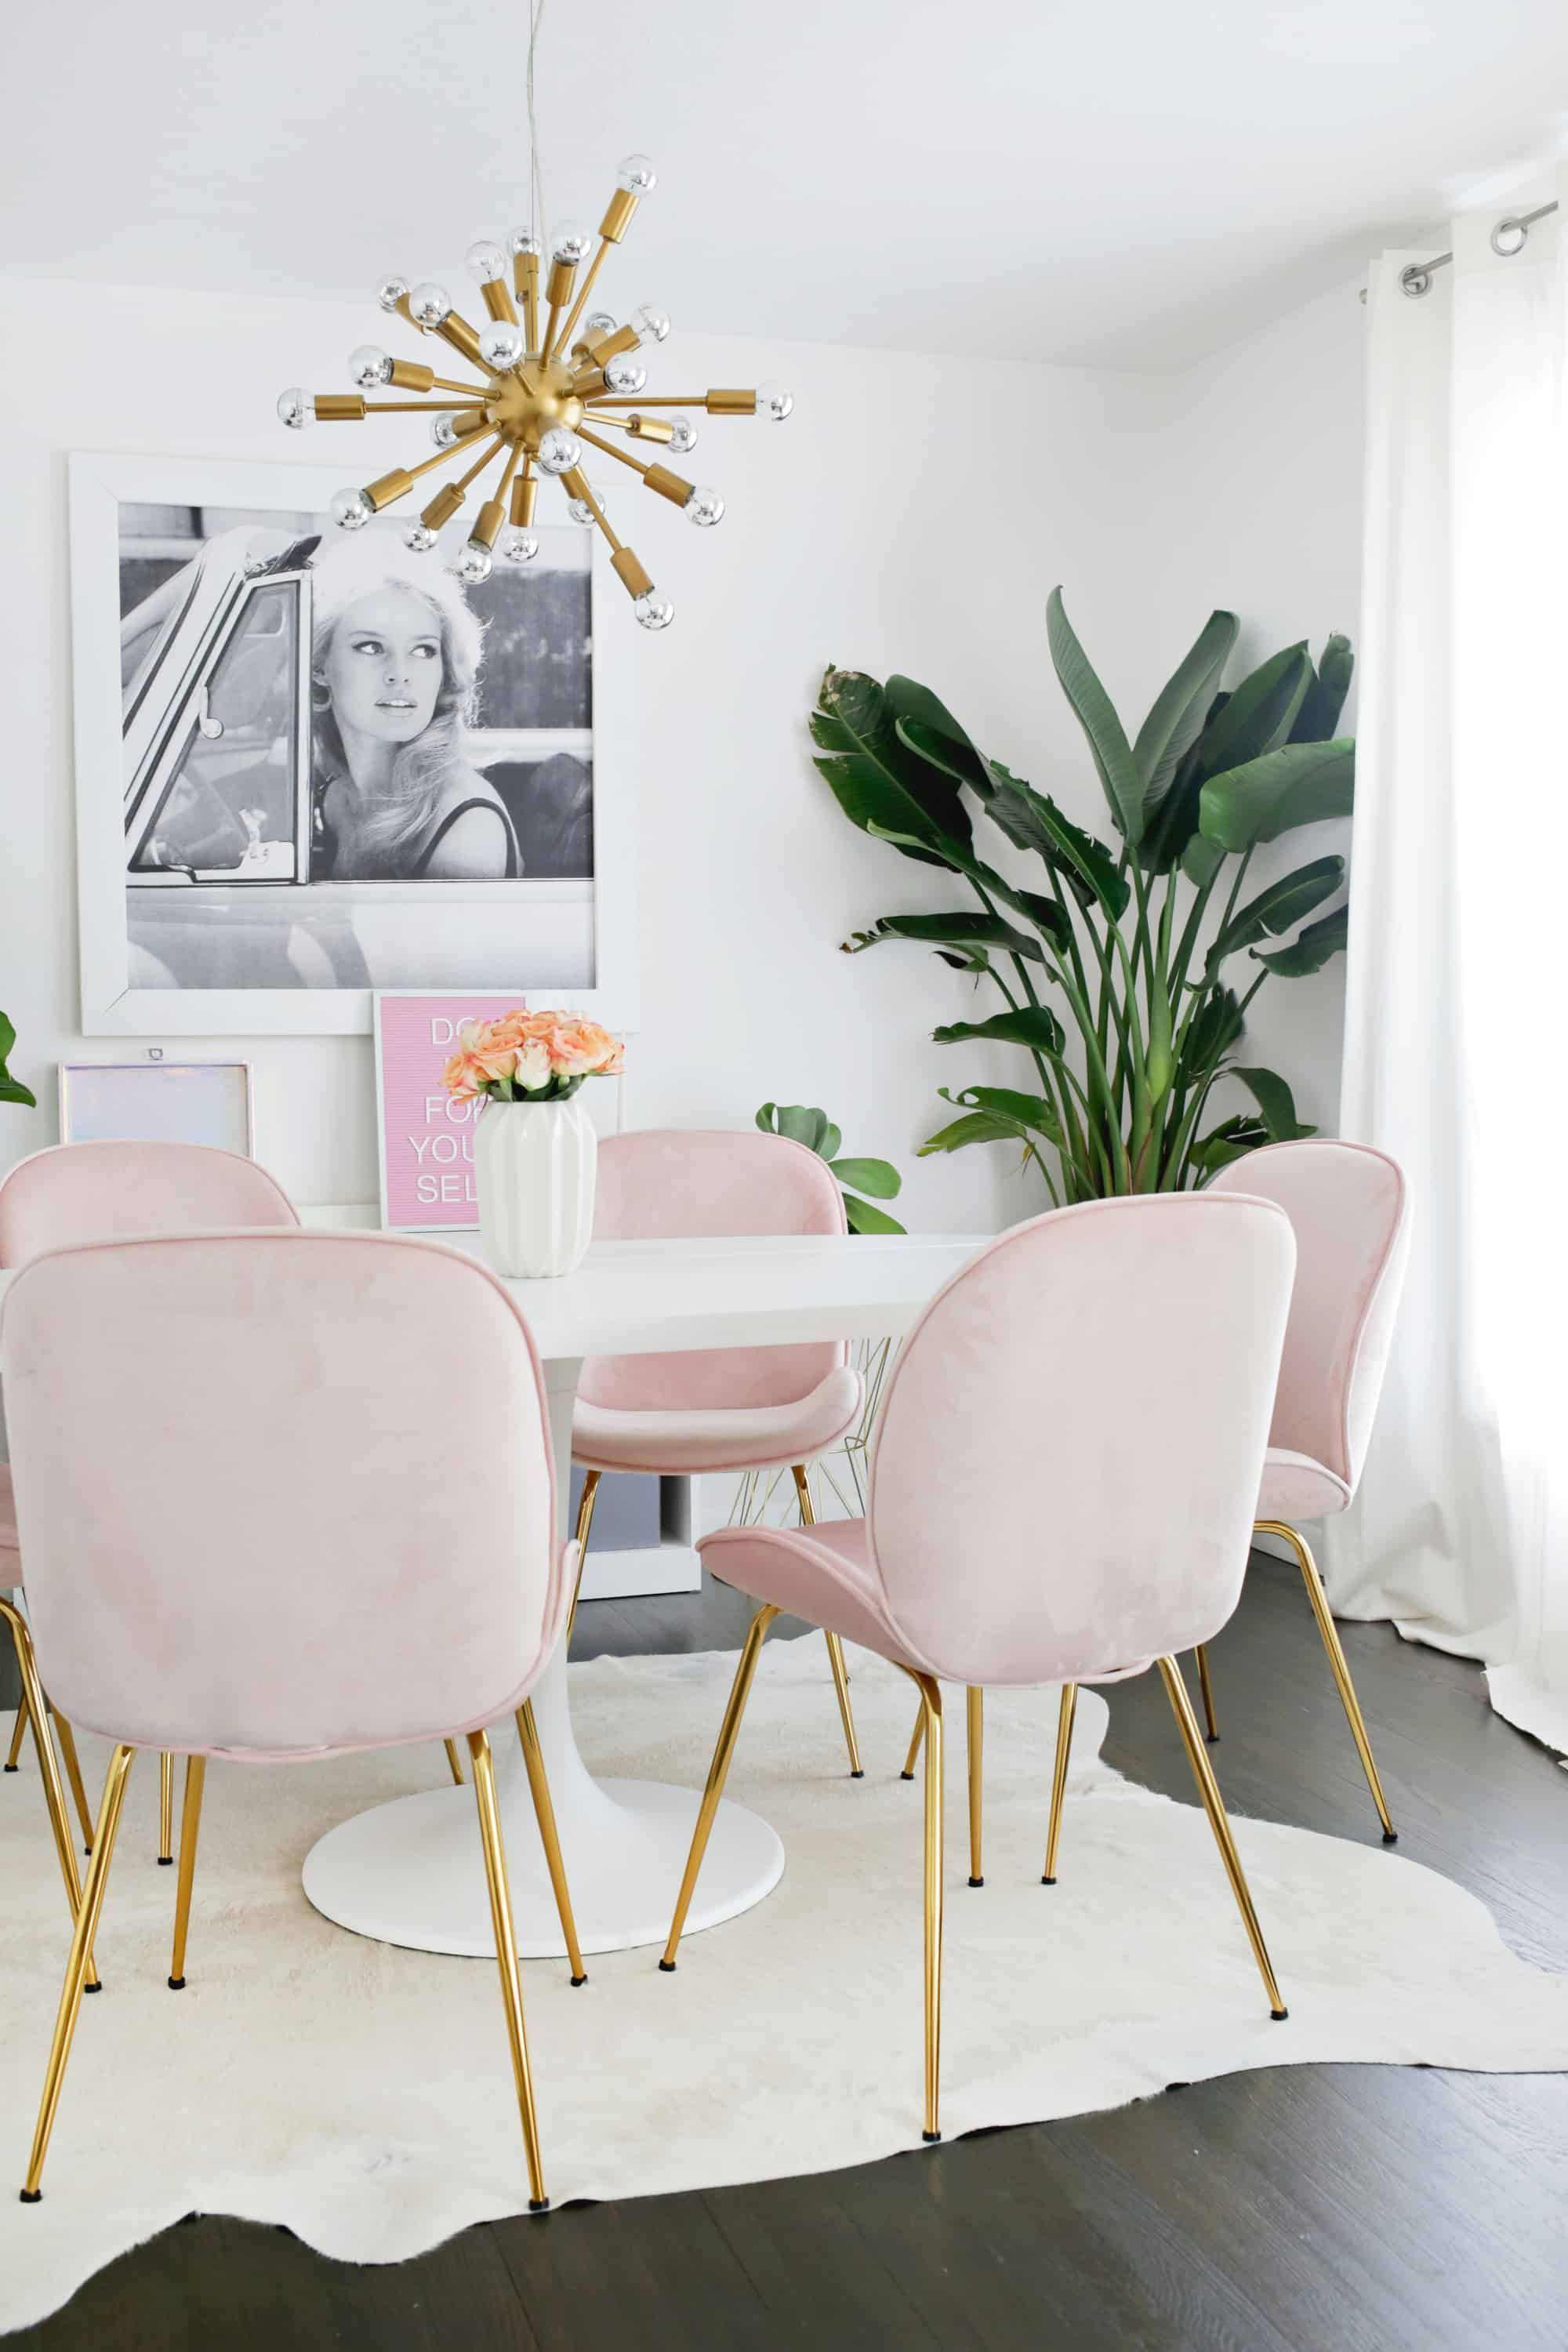 30 Wonderful Showcase Design Ideas For Dining Room In 2020